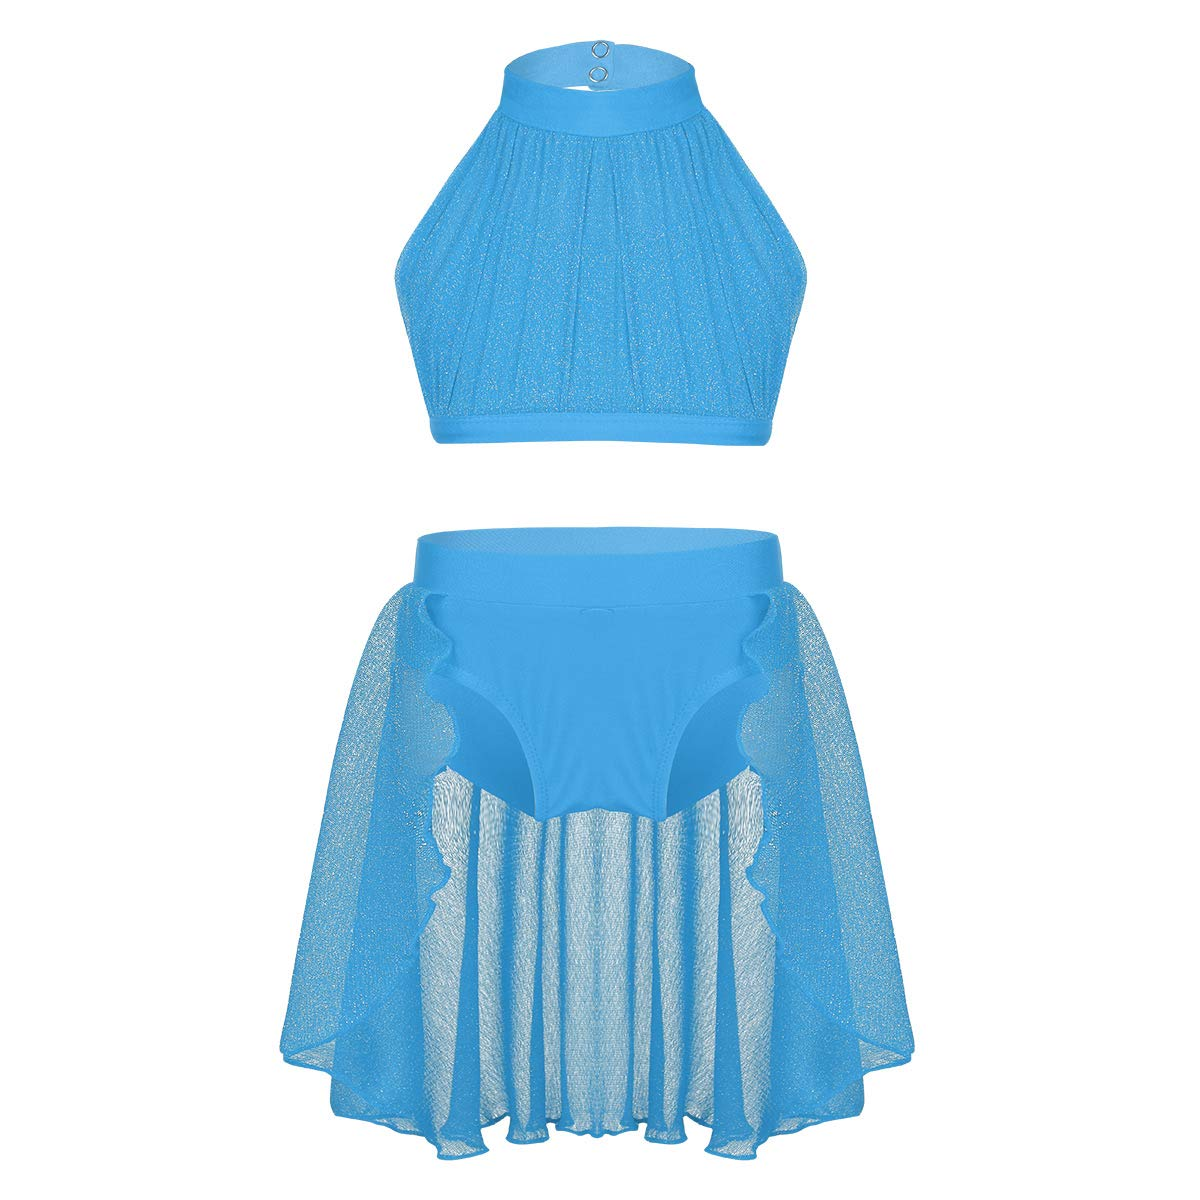 inlzdz Little Big Girls Lyrical Dance 2pcs Outfit High Turtleneck Crop Top with Skirted Bottoms Athletic Costume Sky Blue 3-4 by inlzdz